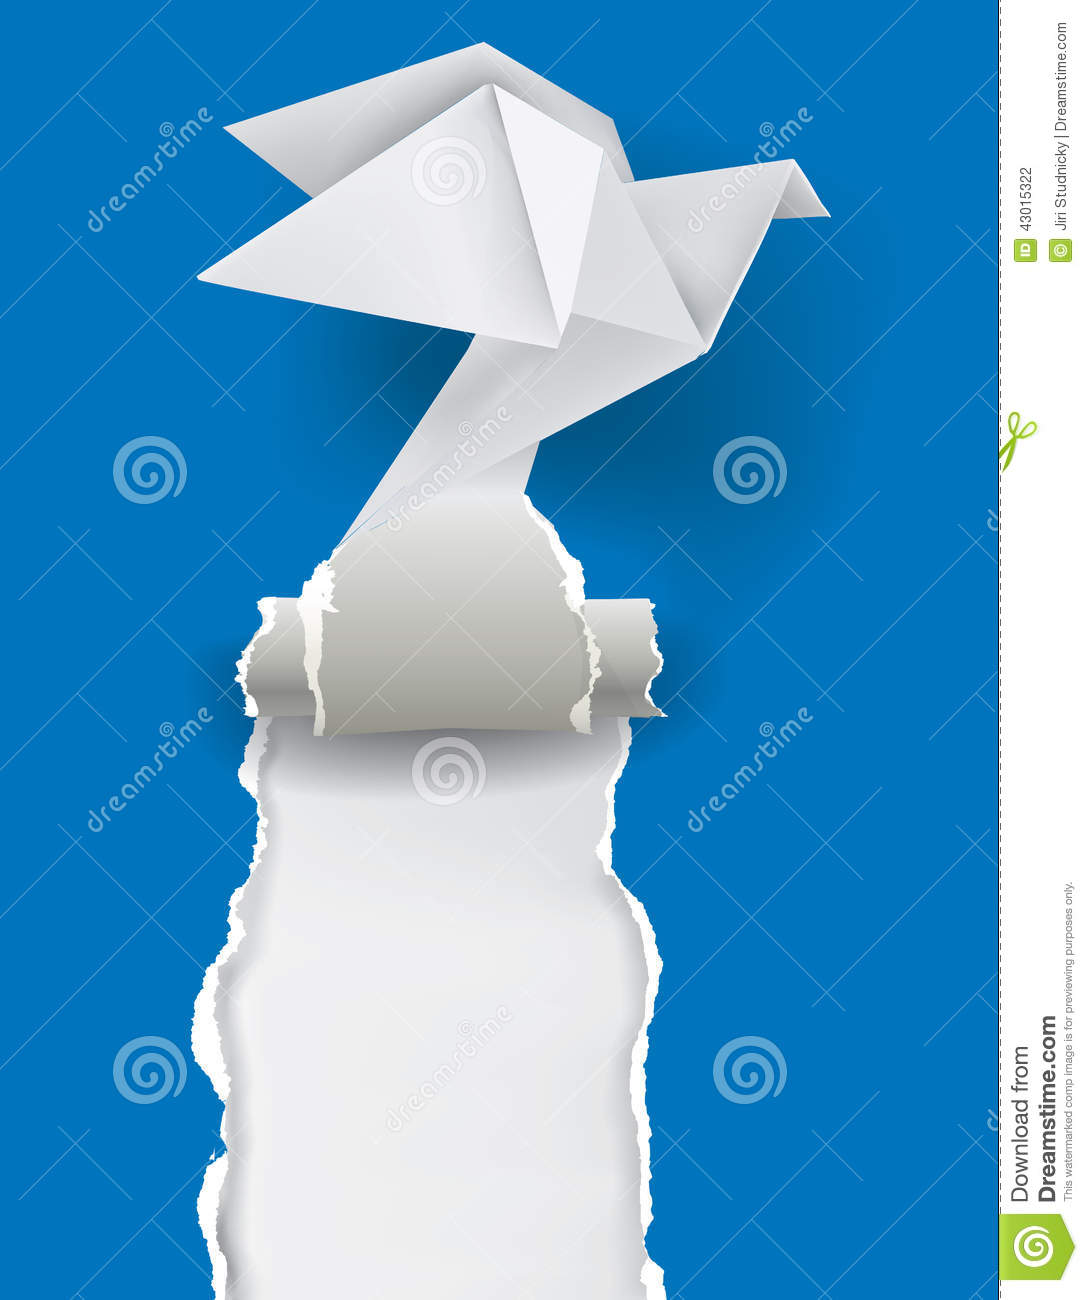 Origami Dove Ripping Blue Paper Stock Vector - Image: 43015322 - photo#12